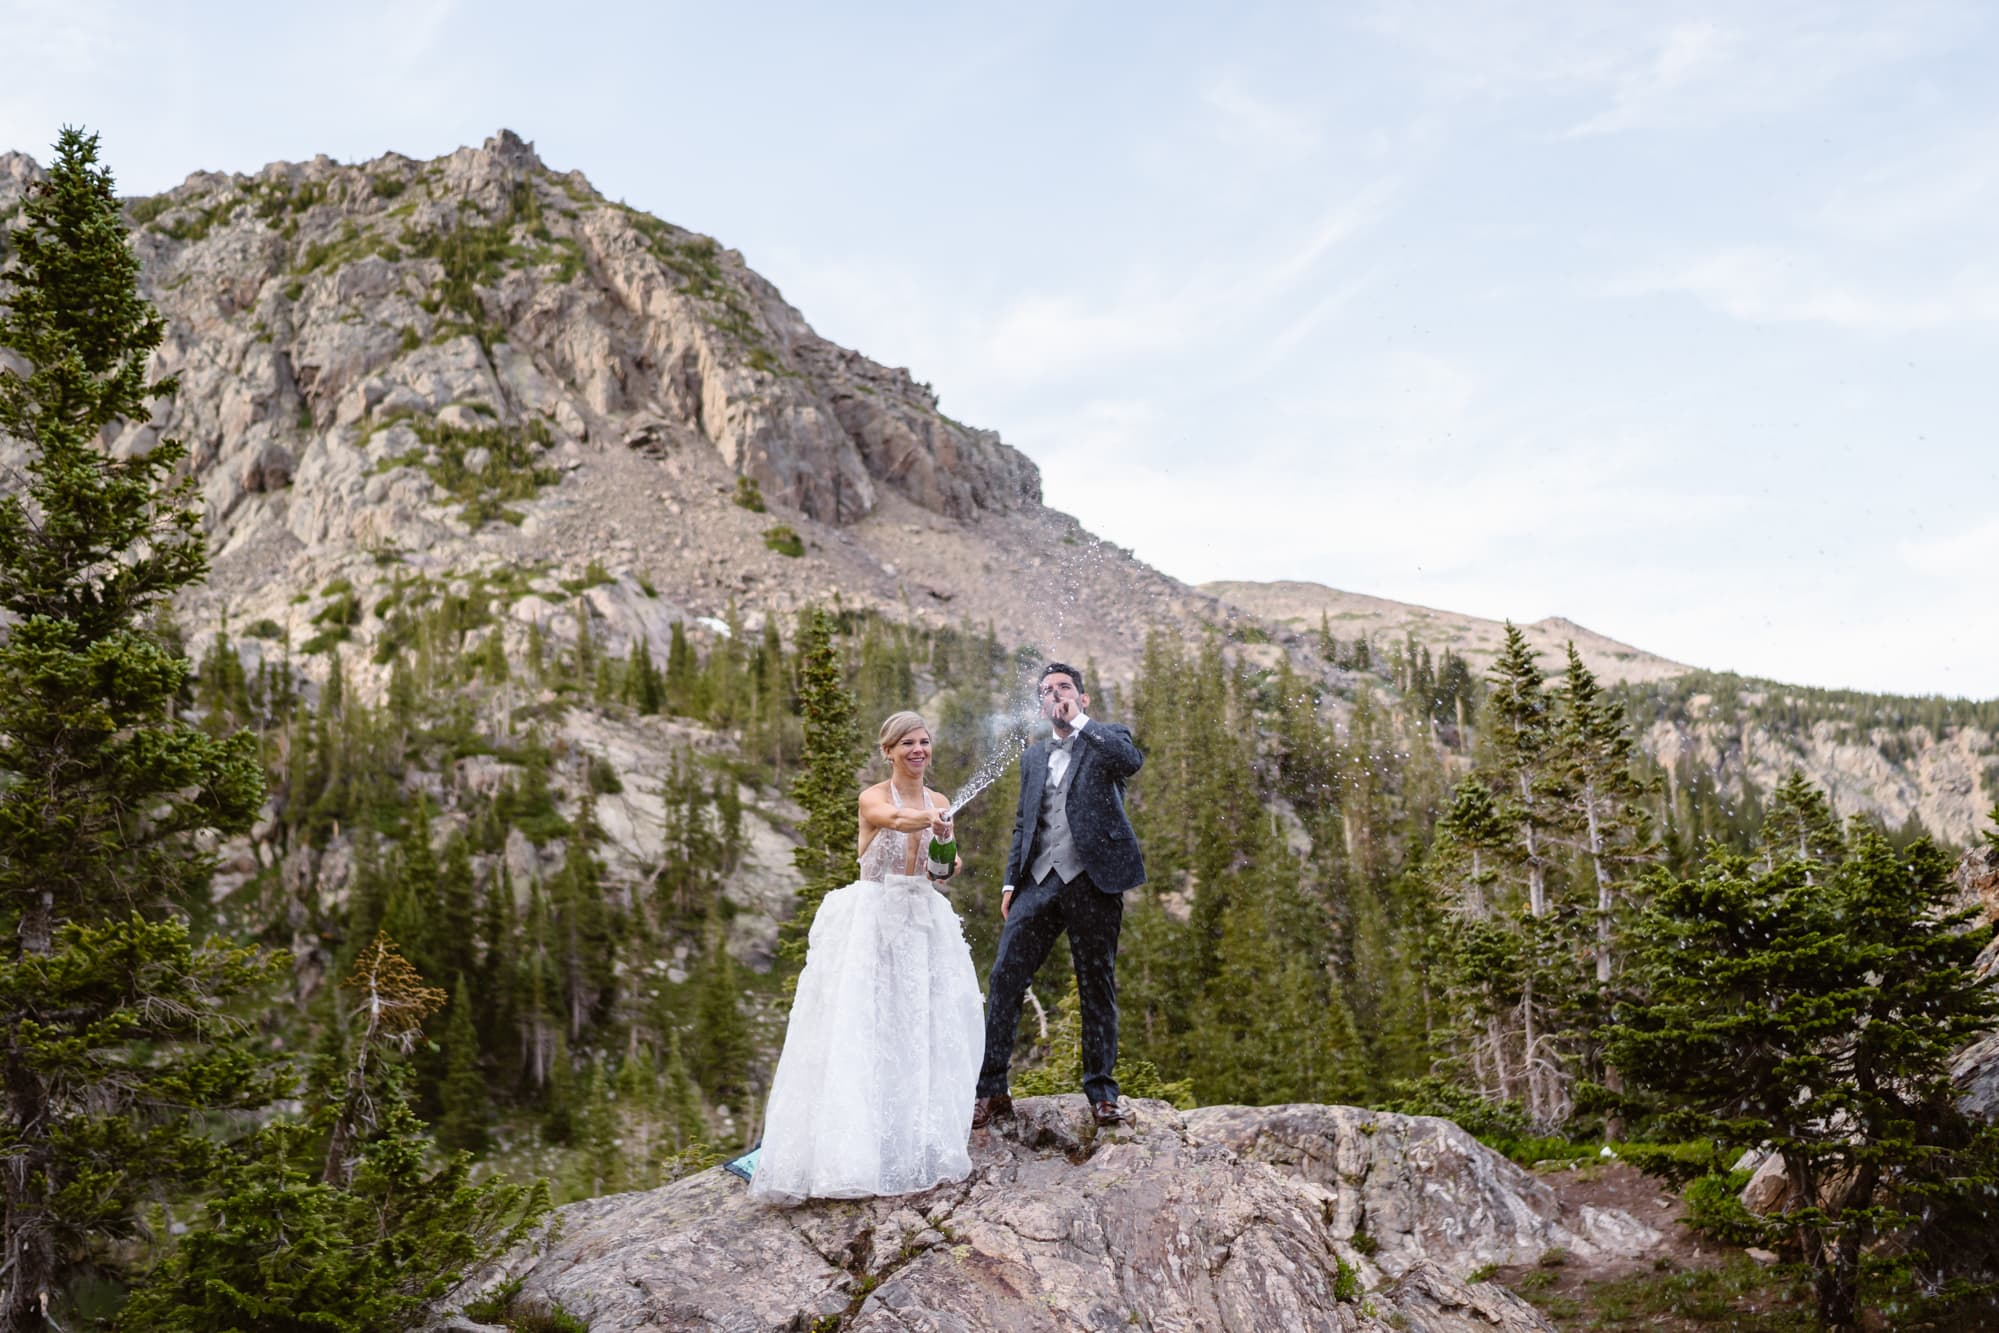 Bride and Groom Champagne Vail Colorado Elopement